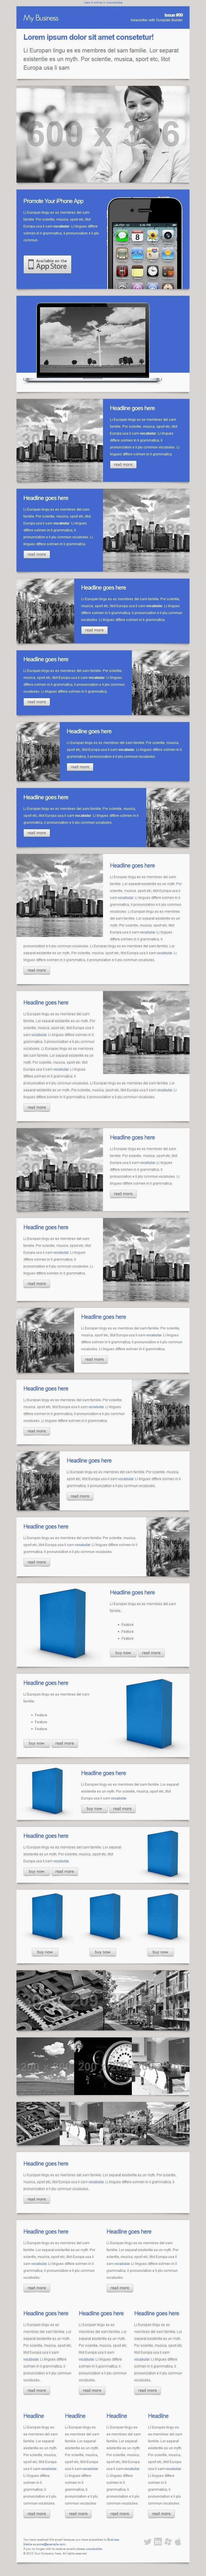 Business - Responsive Newsletter with Template Builder